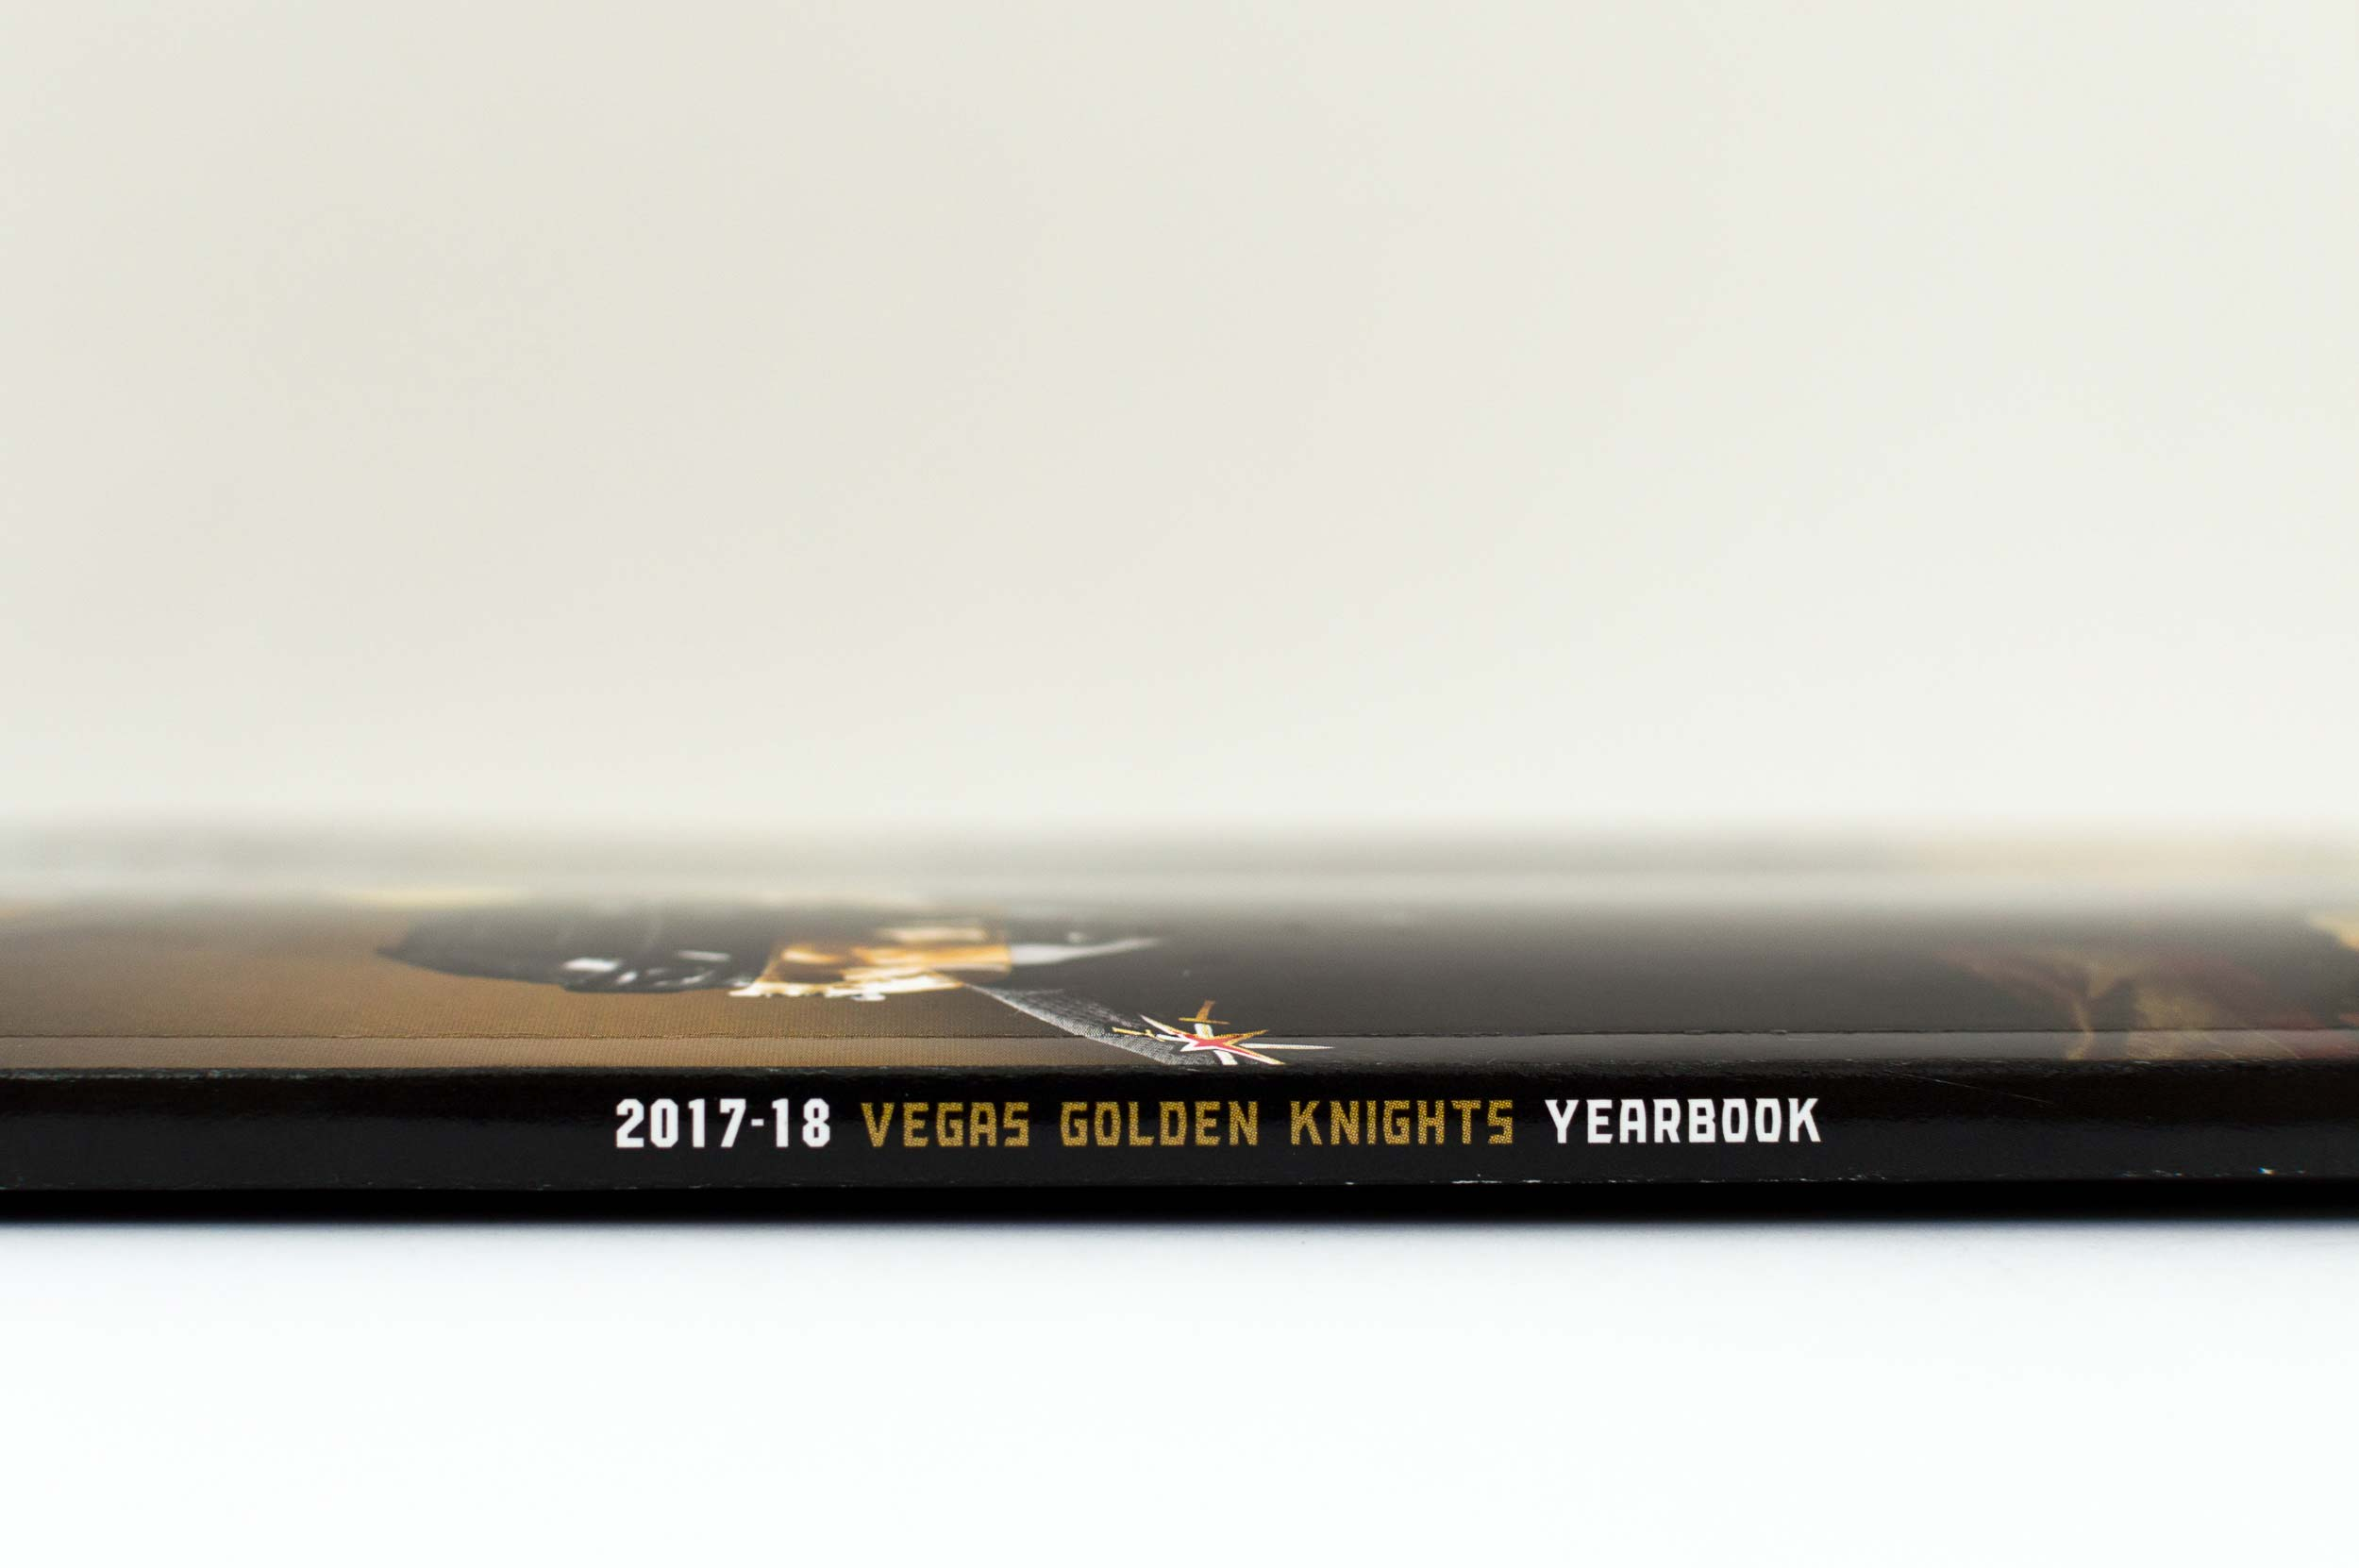 The spine of the 2017-18 Vegas Golden Knights Yearbook.